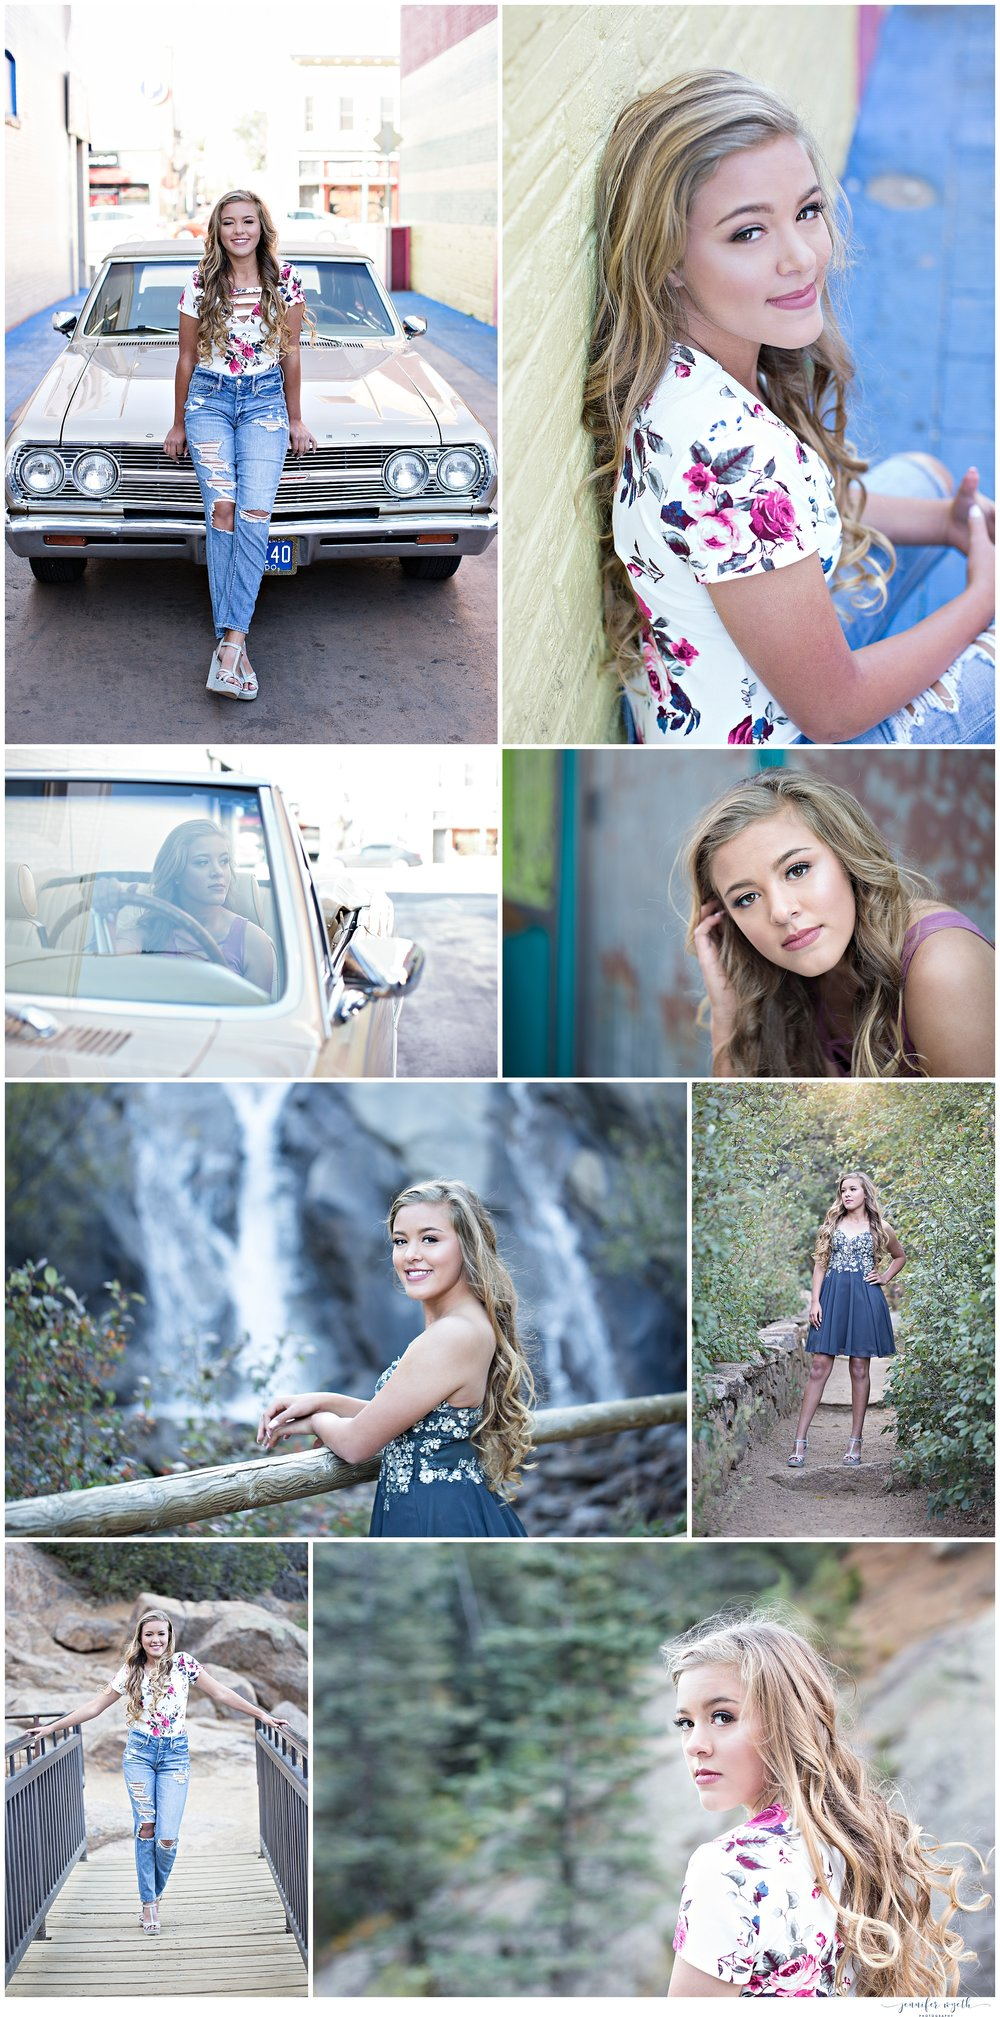 Jennifer-Wyeth-photography-senior-pictures-colorado-springs-photographer_0241.jpg